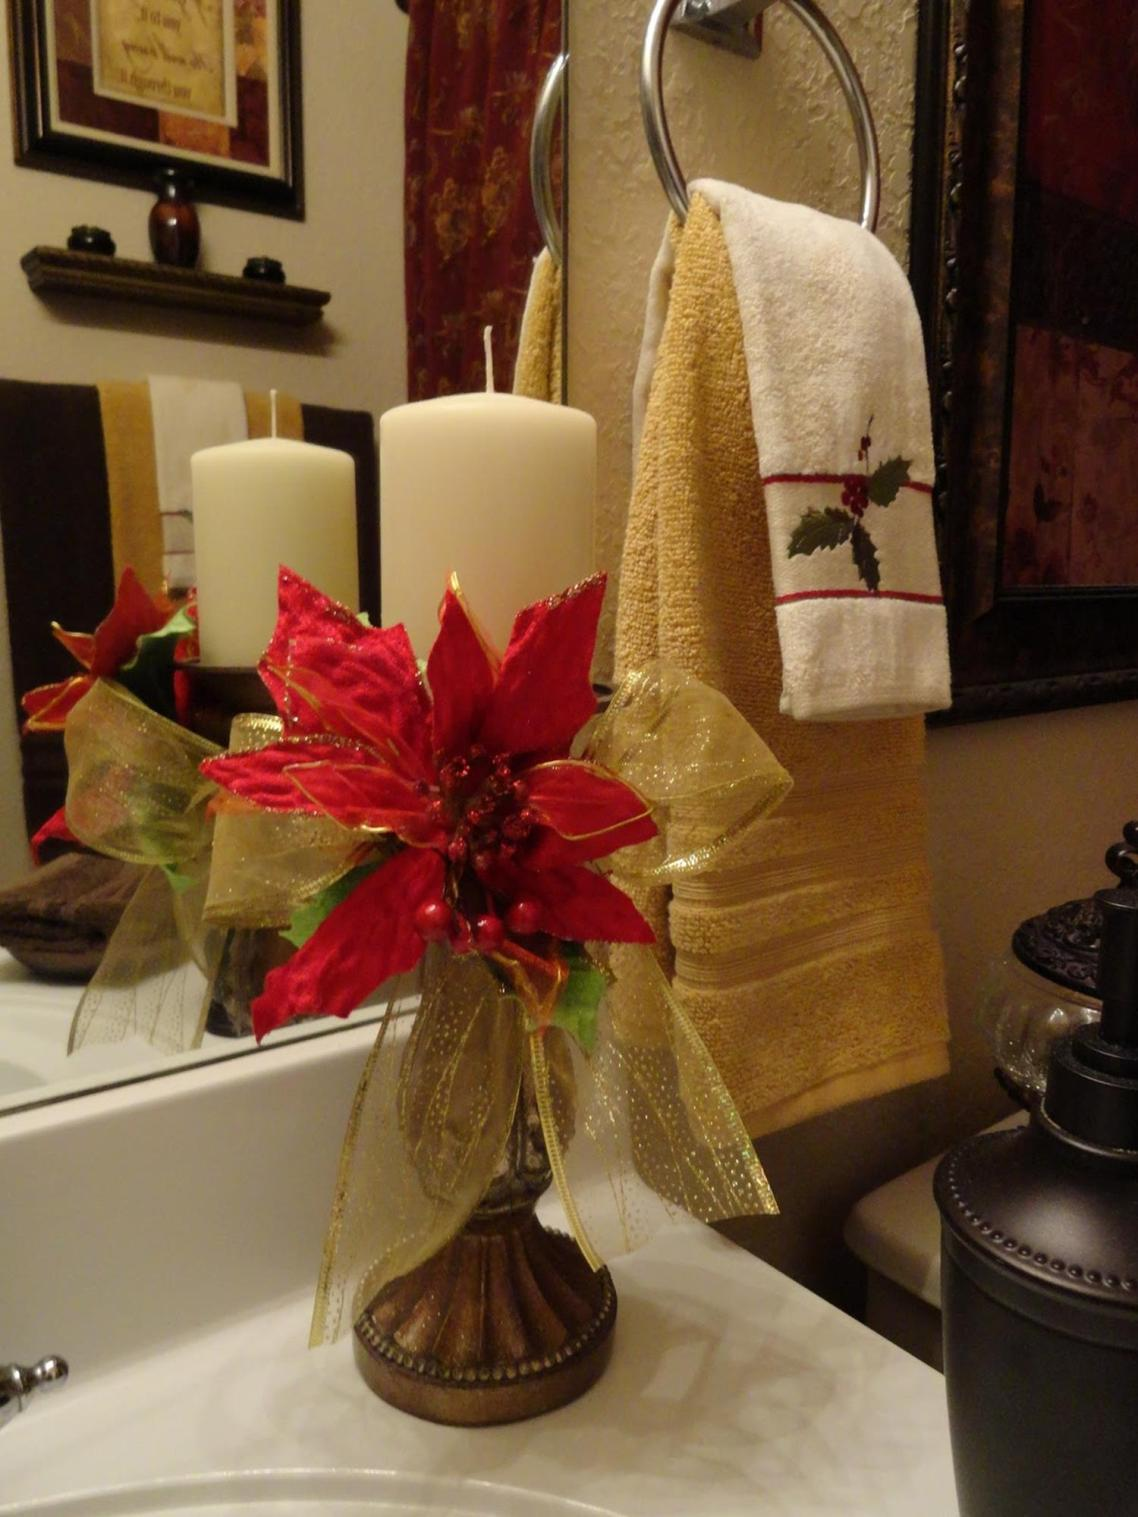 Bathroom with Holiday Wall Decor 5